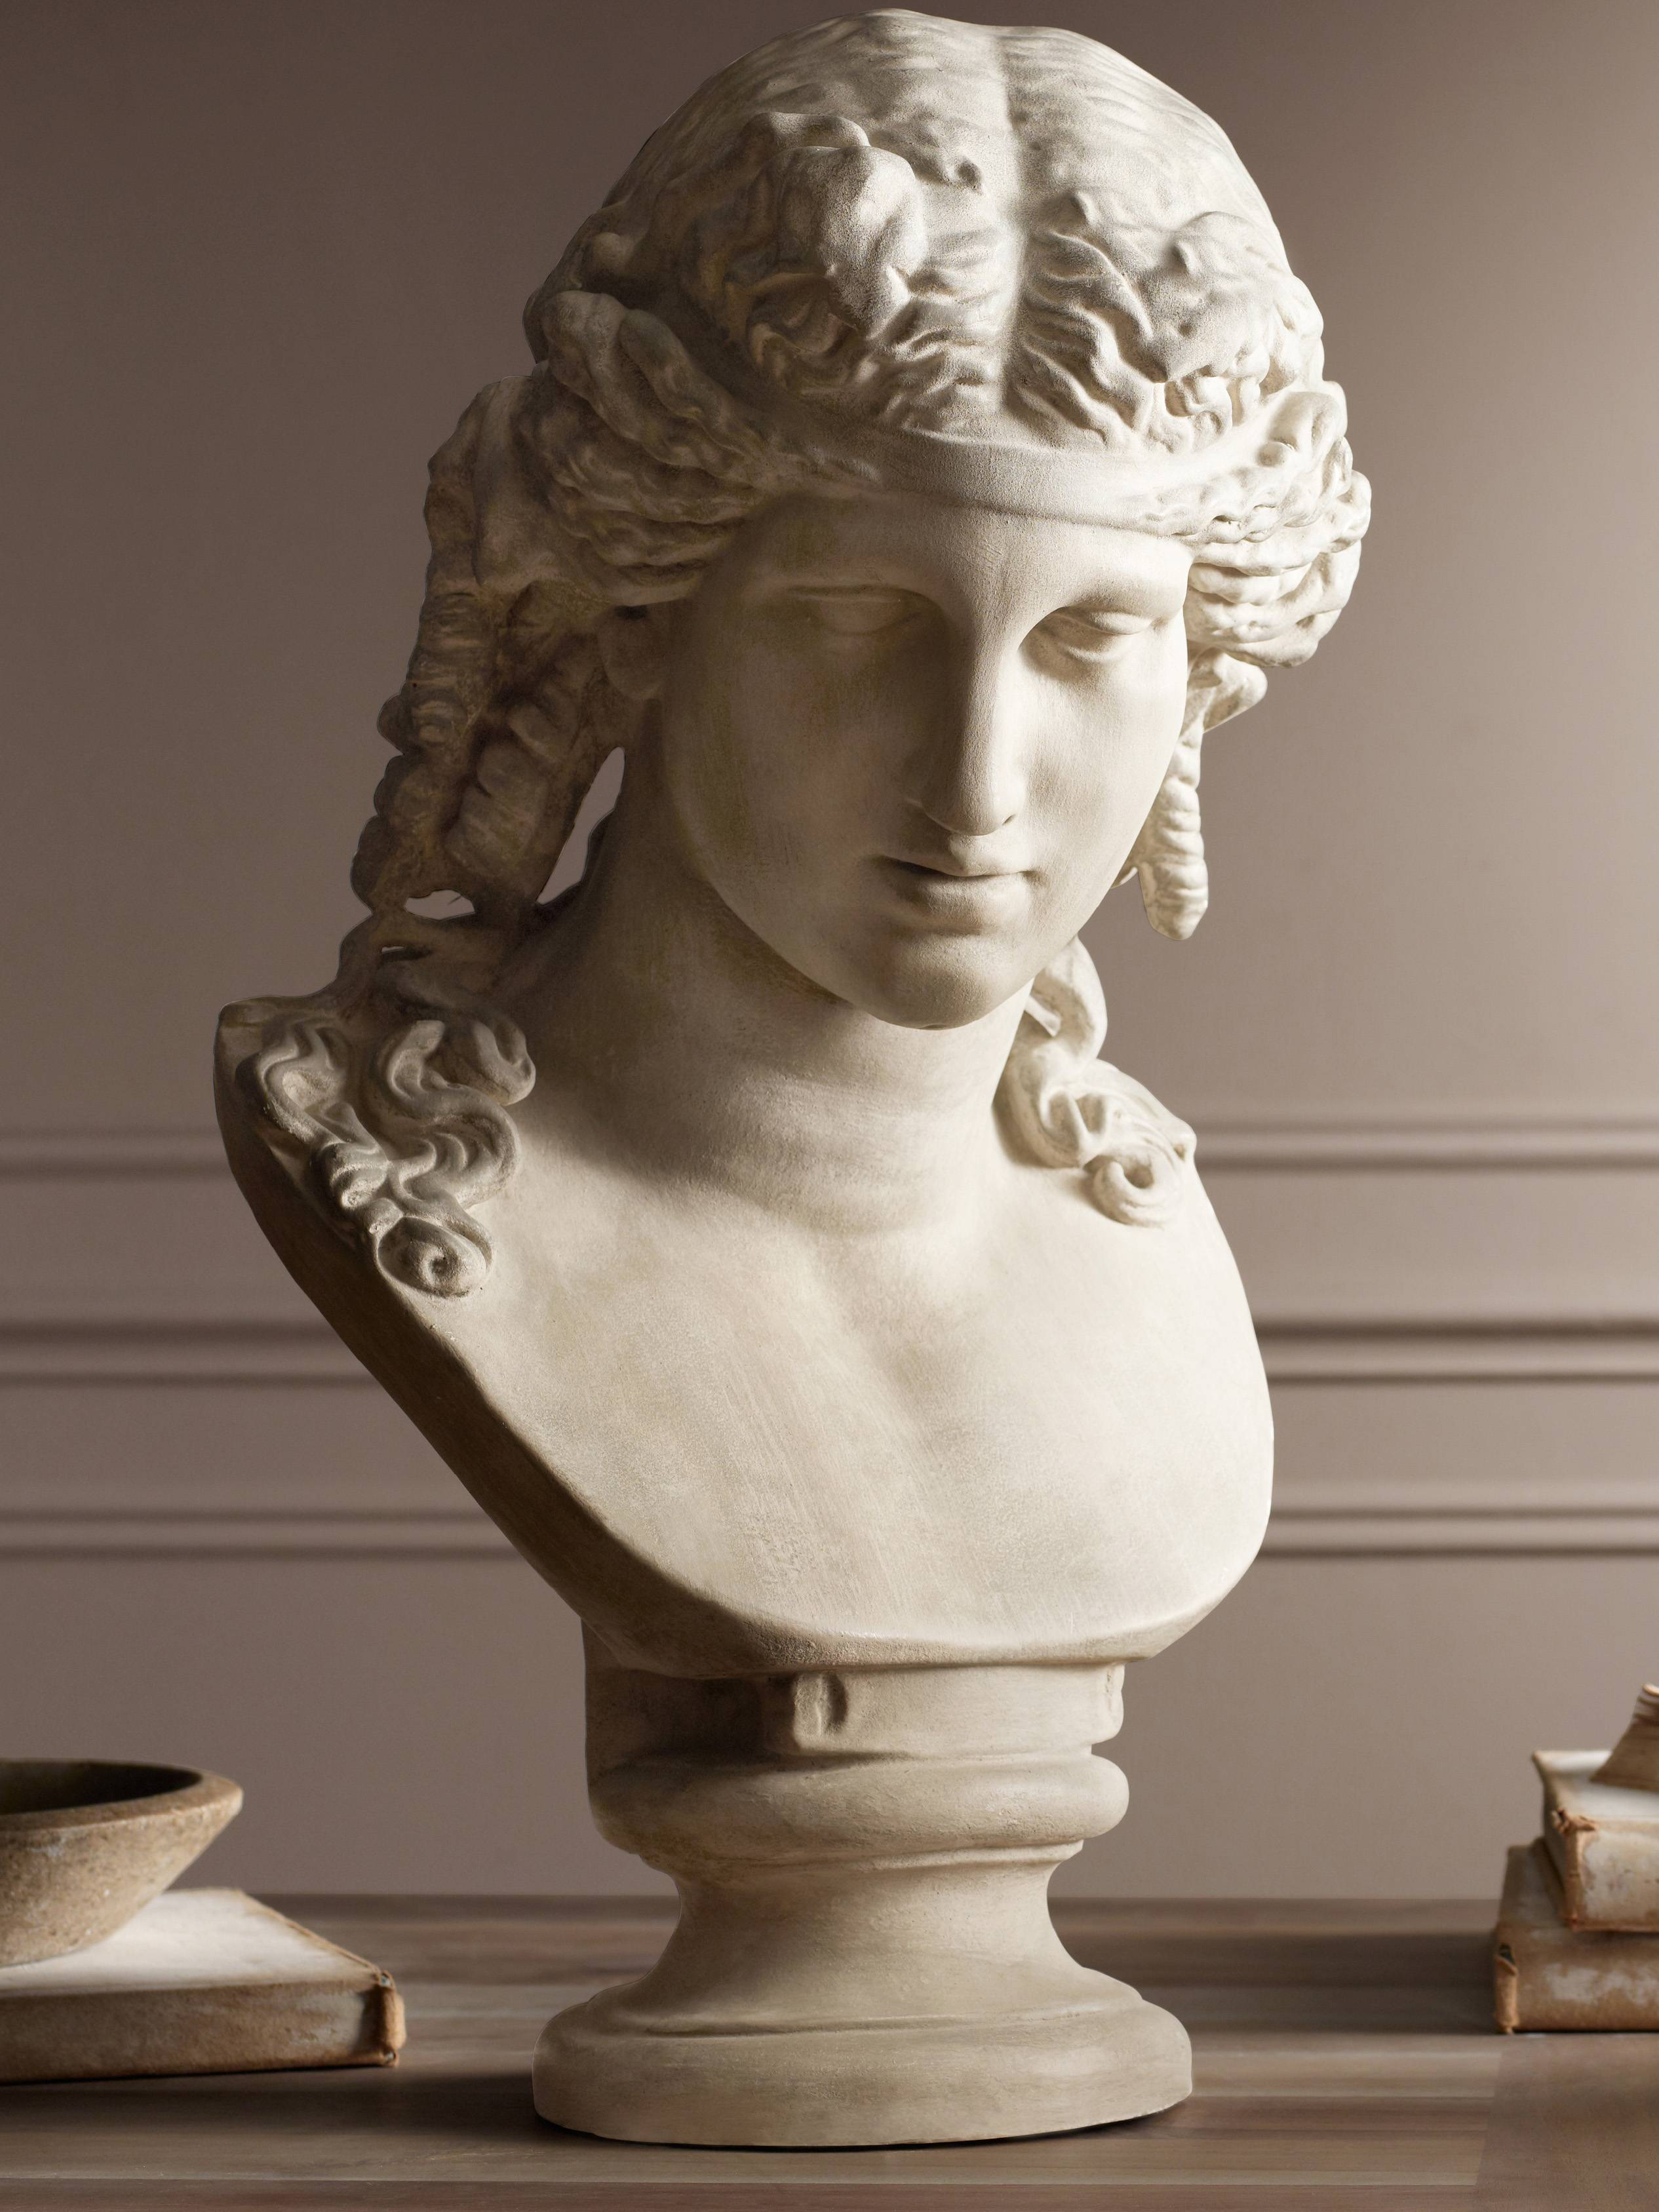 This bust of Ariadne is cast from plaster and hand rubbed to give it an aged look as an elegant objet d'art from the neoclassical era.